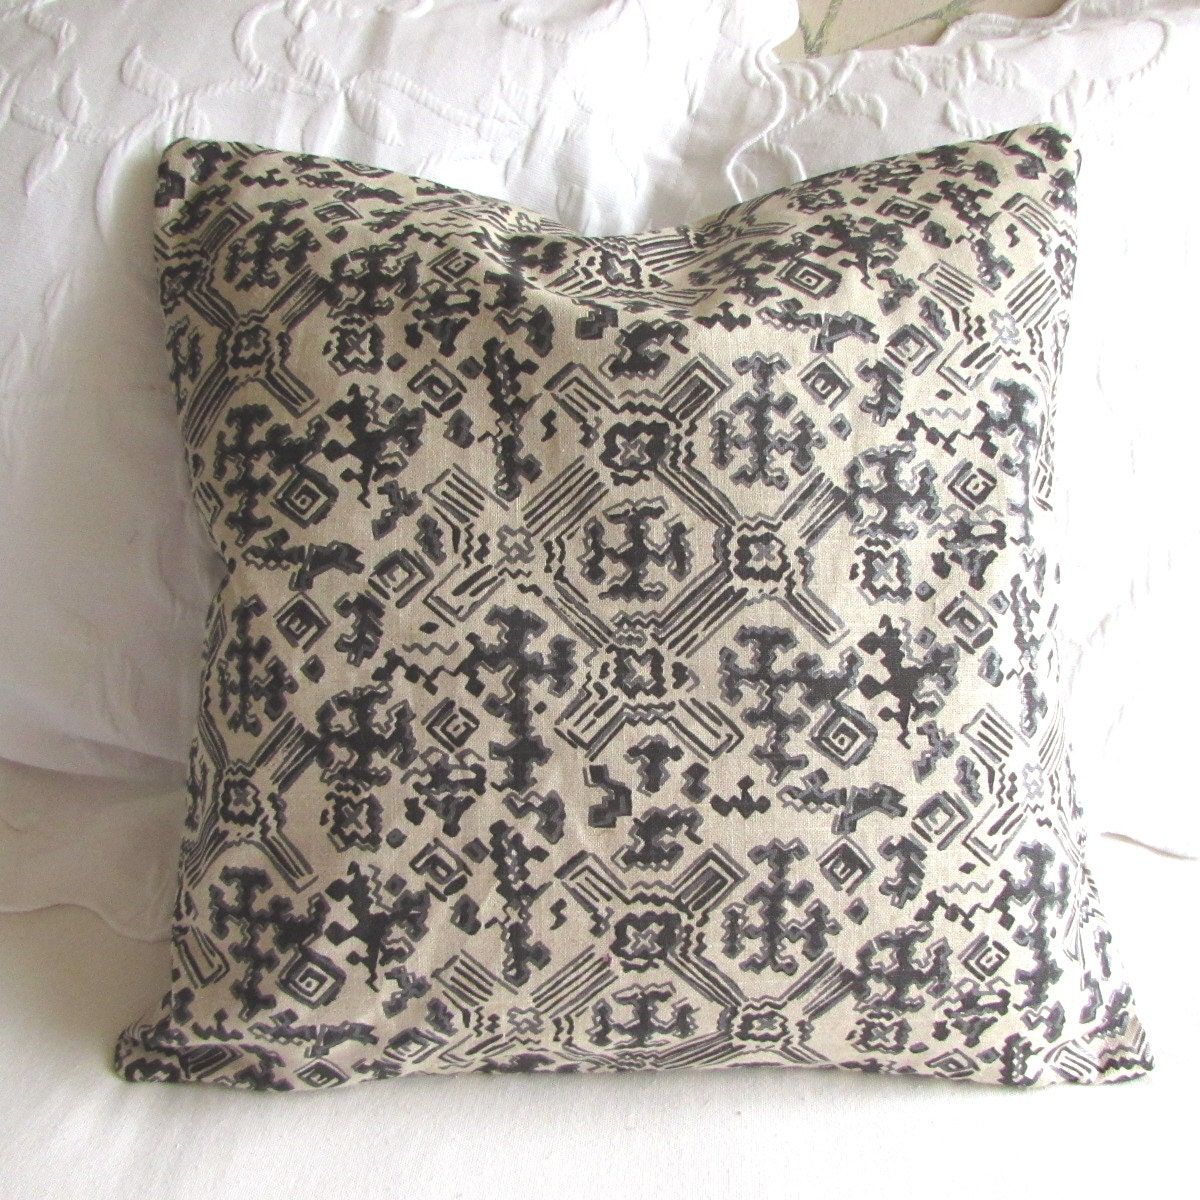 22x22 Decorative Pillows : Nomad Black fabric decorative Pillow Cover 18x18 20x20 22x22